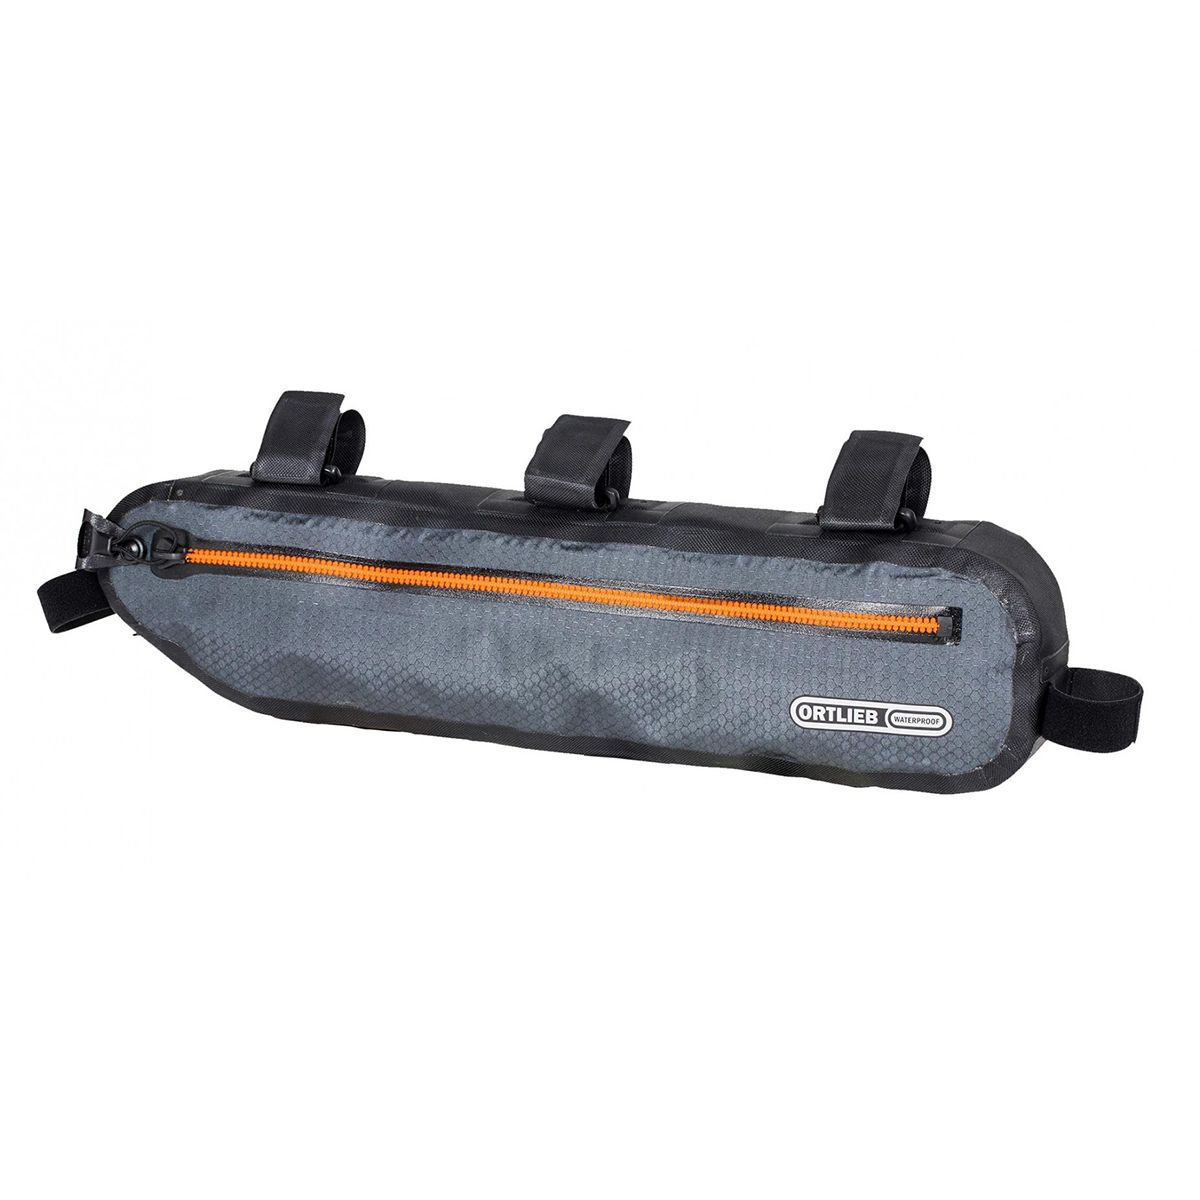 ORTLIEB BIKE PACKING FRAME-PACK TOPTUBE frame bag | item_misc